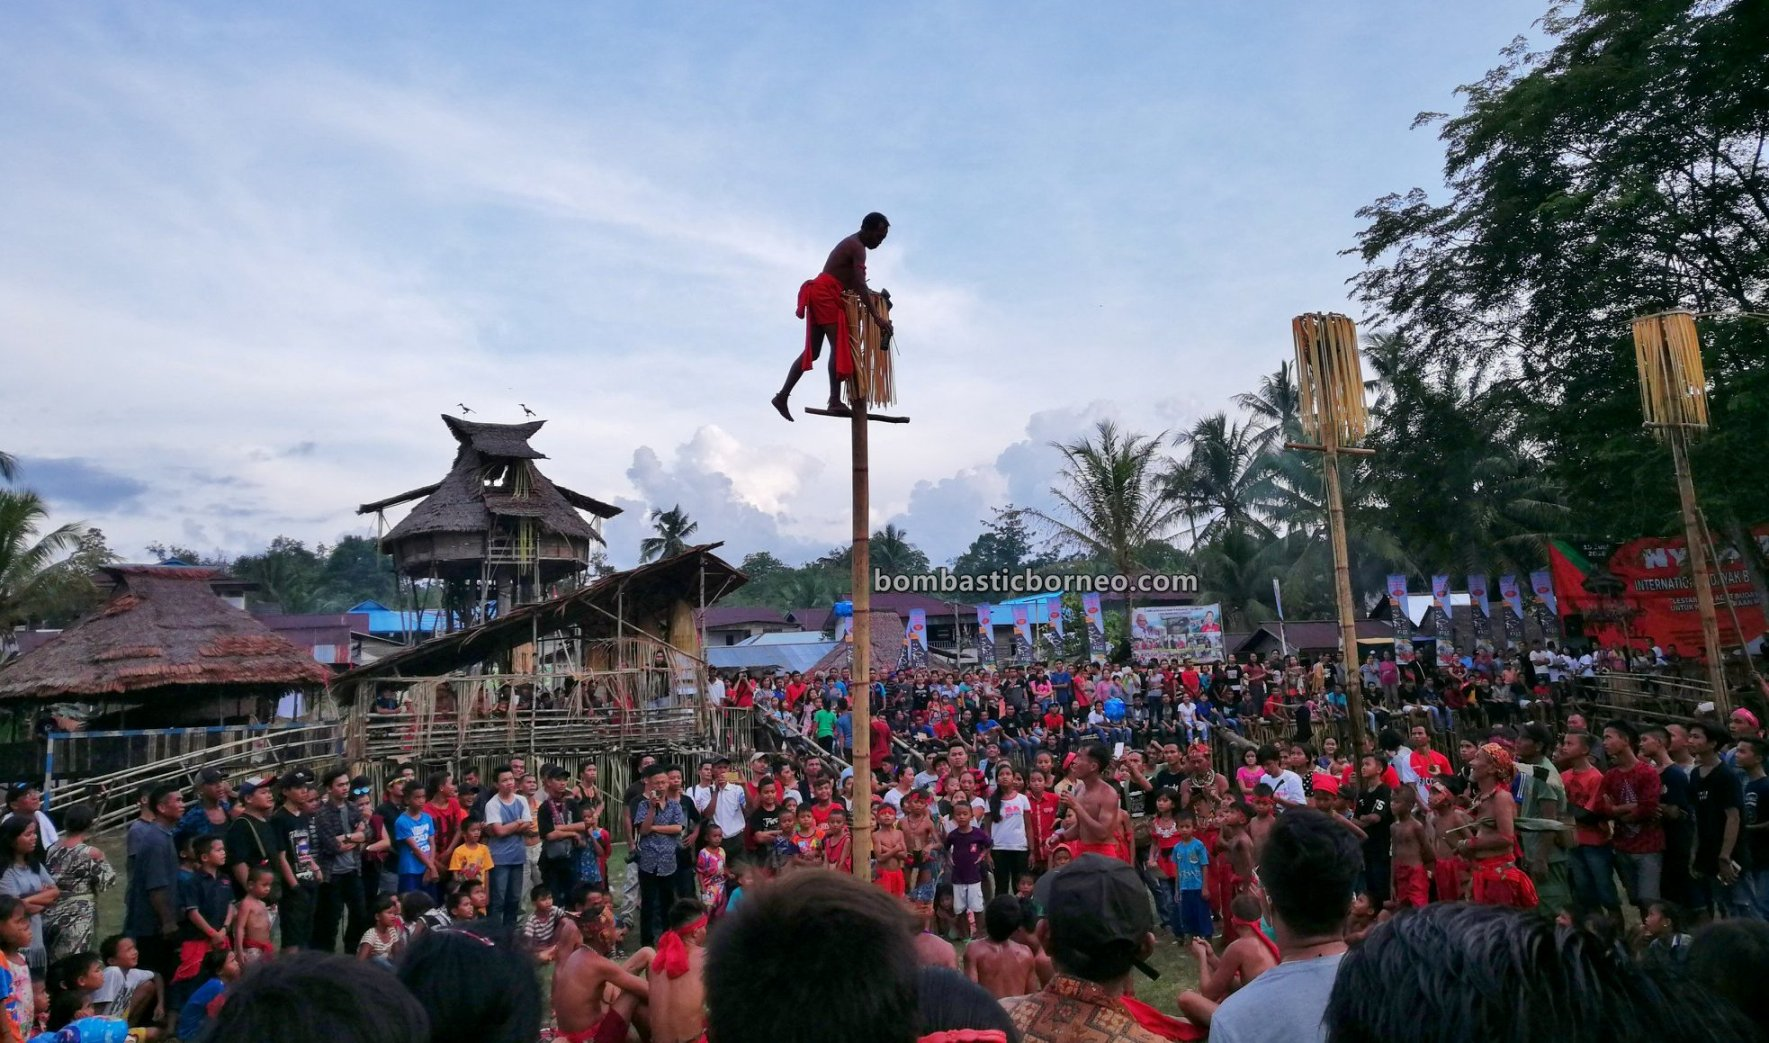 Paddy Harvest Festival, traditional, Destination, culture, Bengkayang, Kalimantan Barat, Ethnic, tribal, Baruk, Tourism, travel guide, bamboo climbing, Cross Border, Borneo, 印尼西加里曼丹, 婆罗洲达雅丰收节